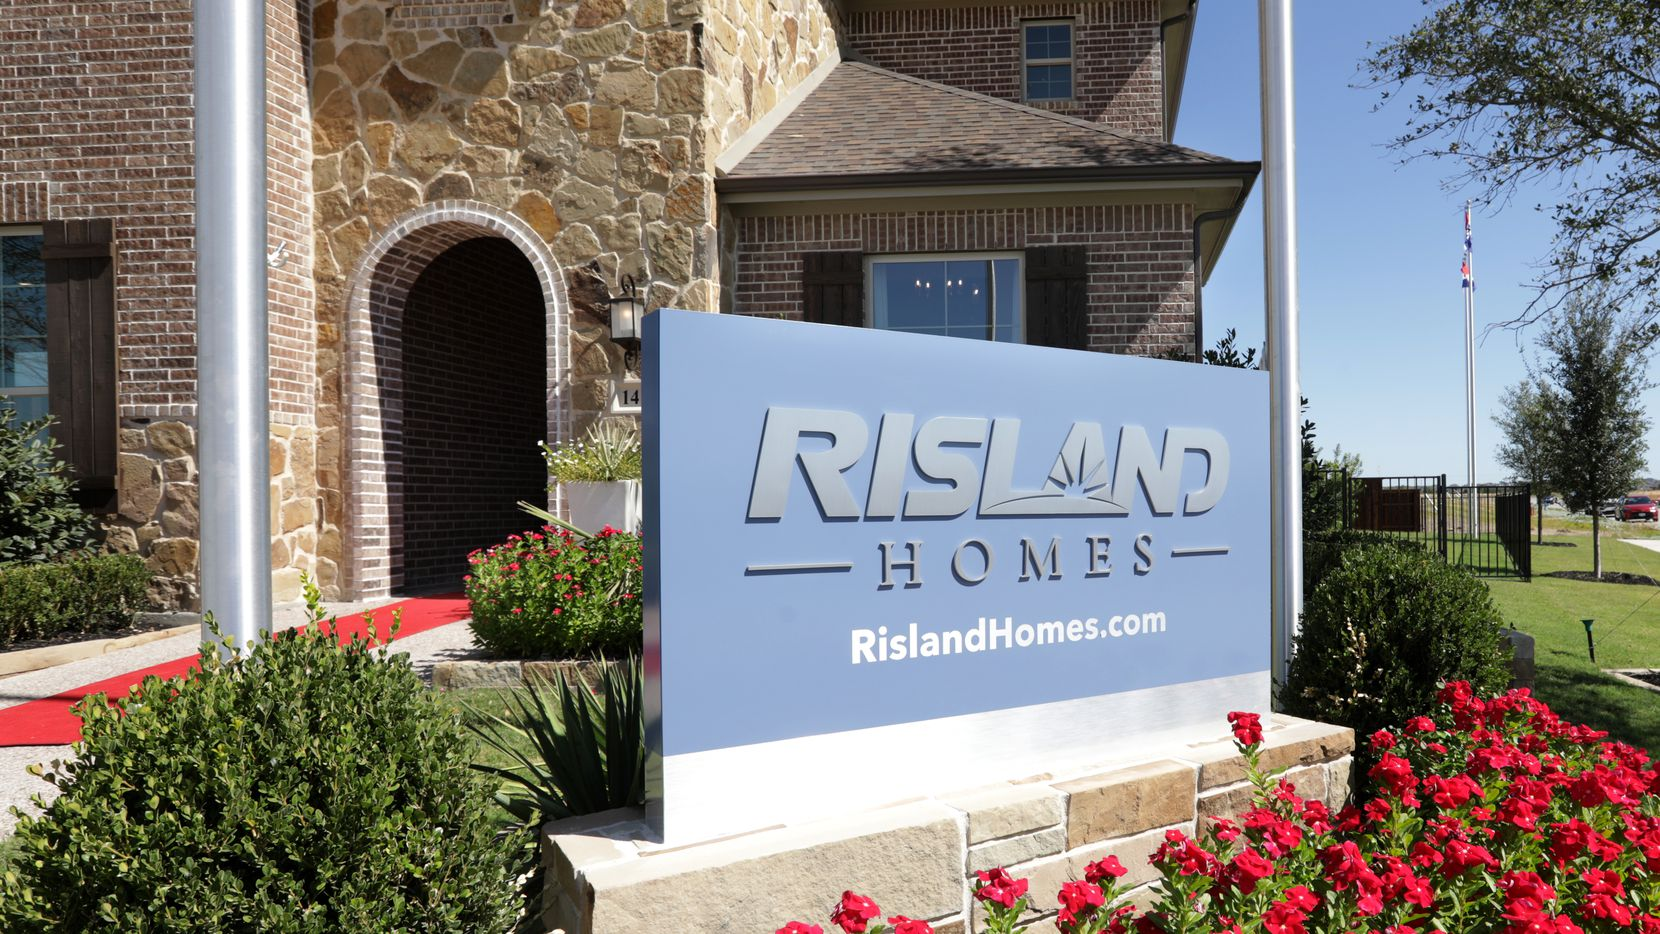 Risland Homes is opening its huge residential community in March along U.S. 75 north of Dallas.